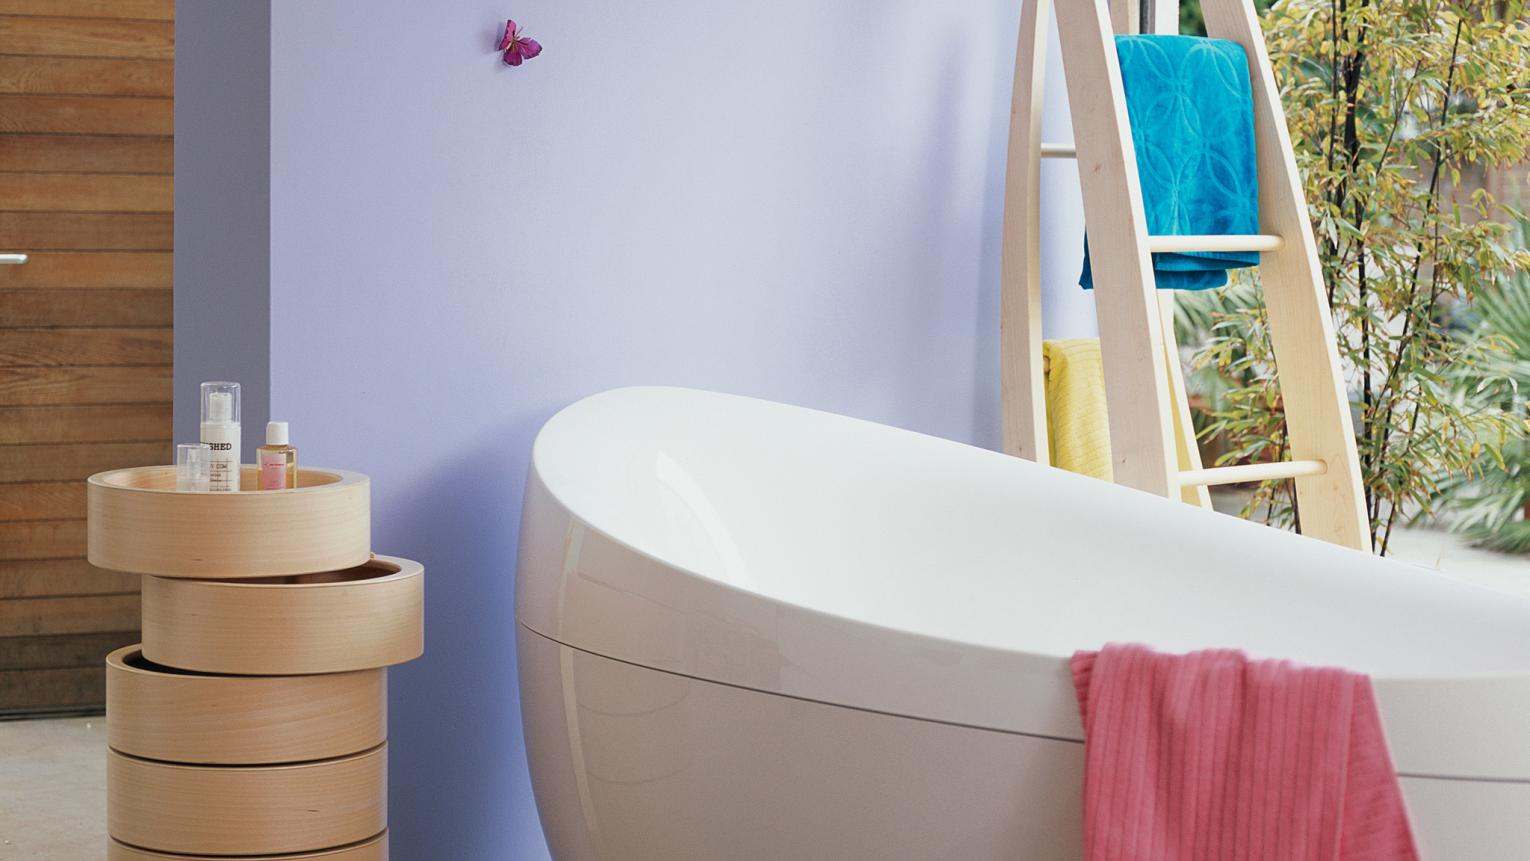 Pops of candy colours fill this bathroom with positive energy.